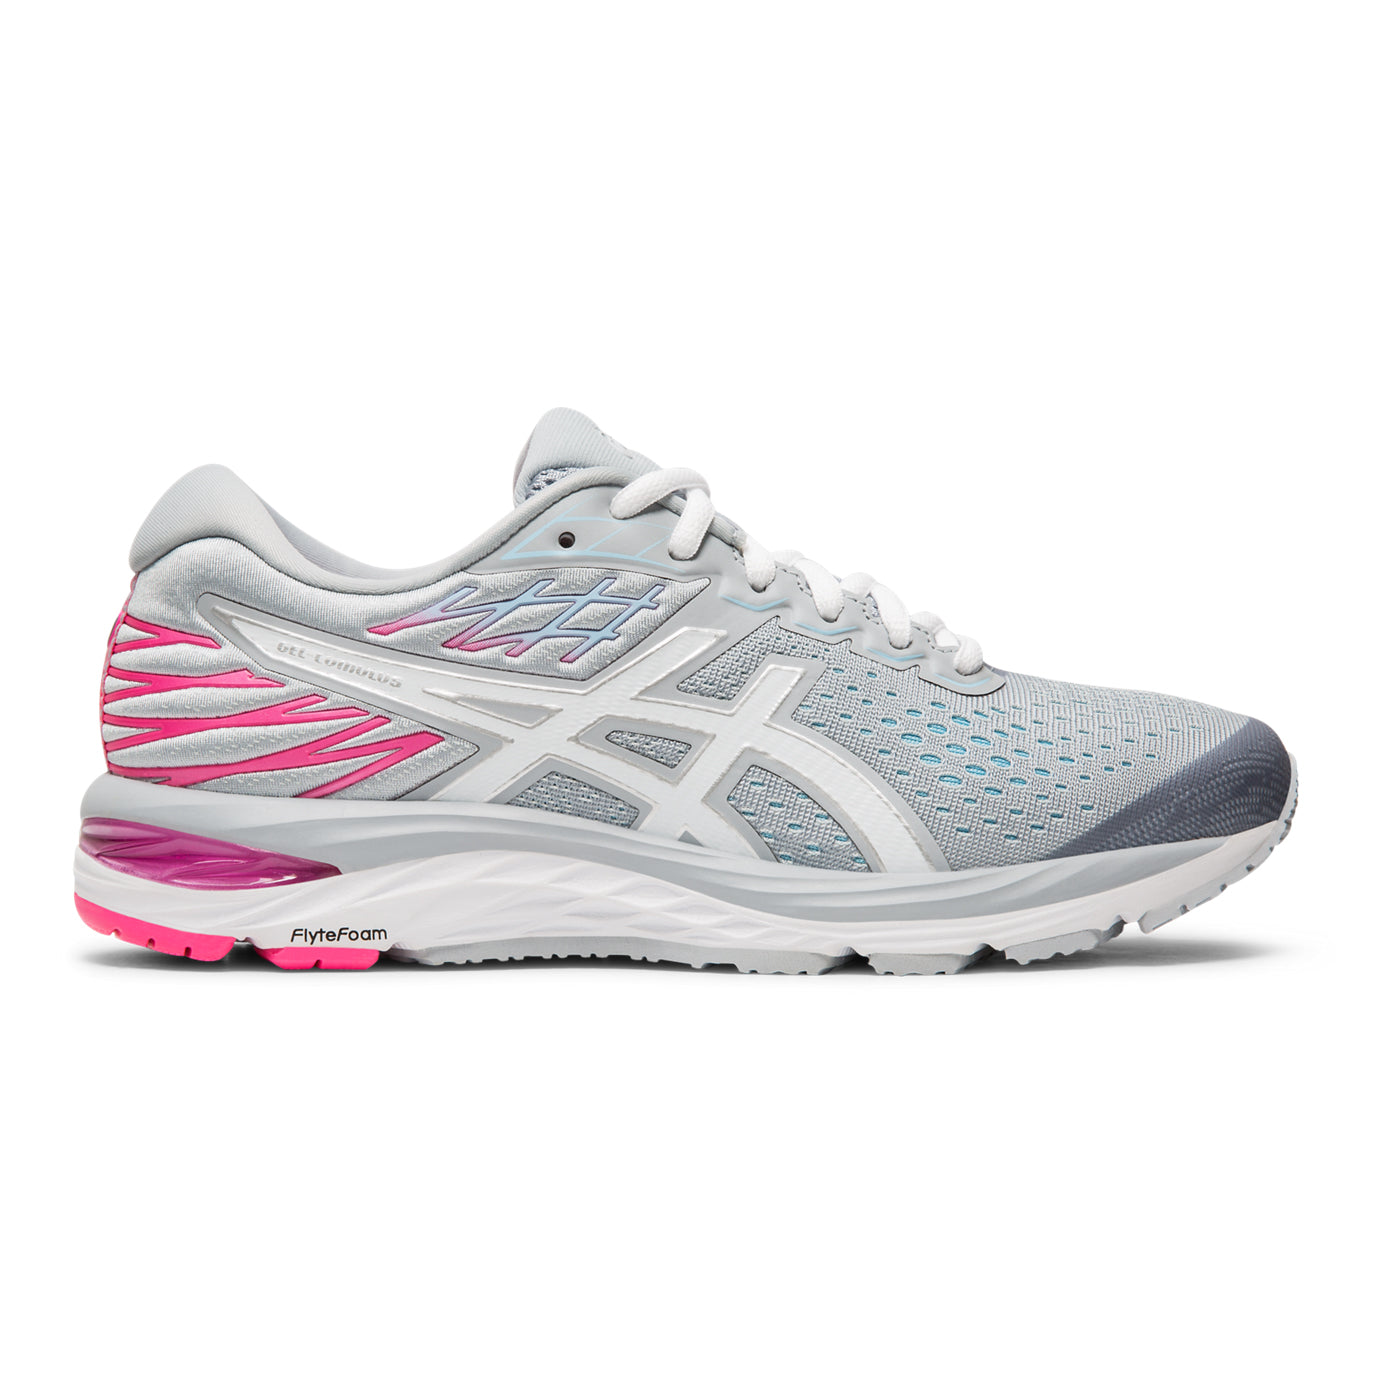 san francisco price reduced hot-selling clearance Women's Gel Cumulus 21 Running Shoe (Wide Width D) - Piedmont Grey / White